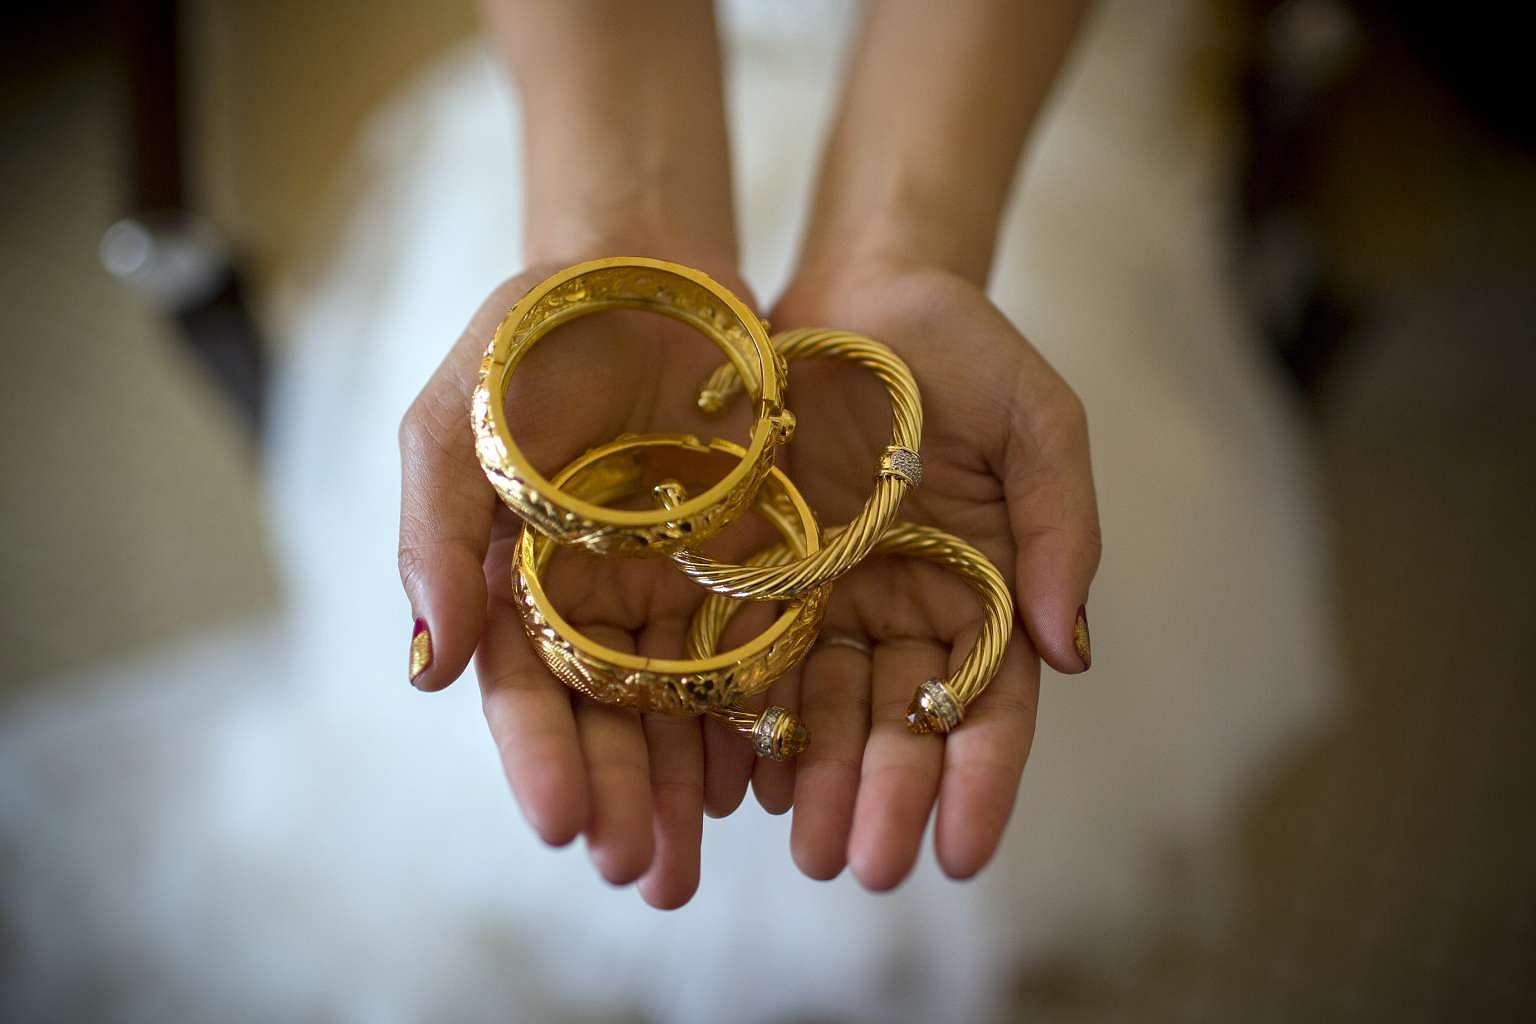 Caili Dowry System A Huge Burden For China Men Seeking To Marry